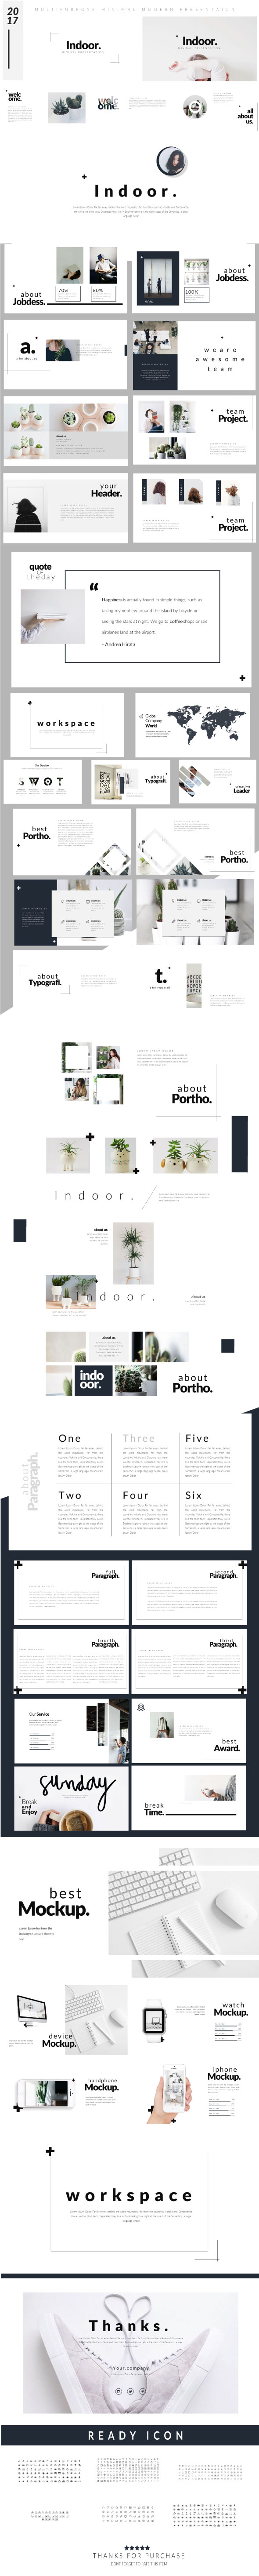 Indoor - Modern Minimal Keynote - Business Keynote Templates